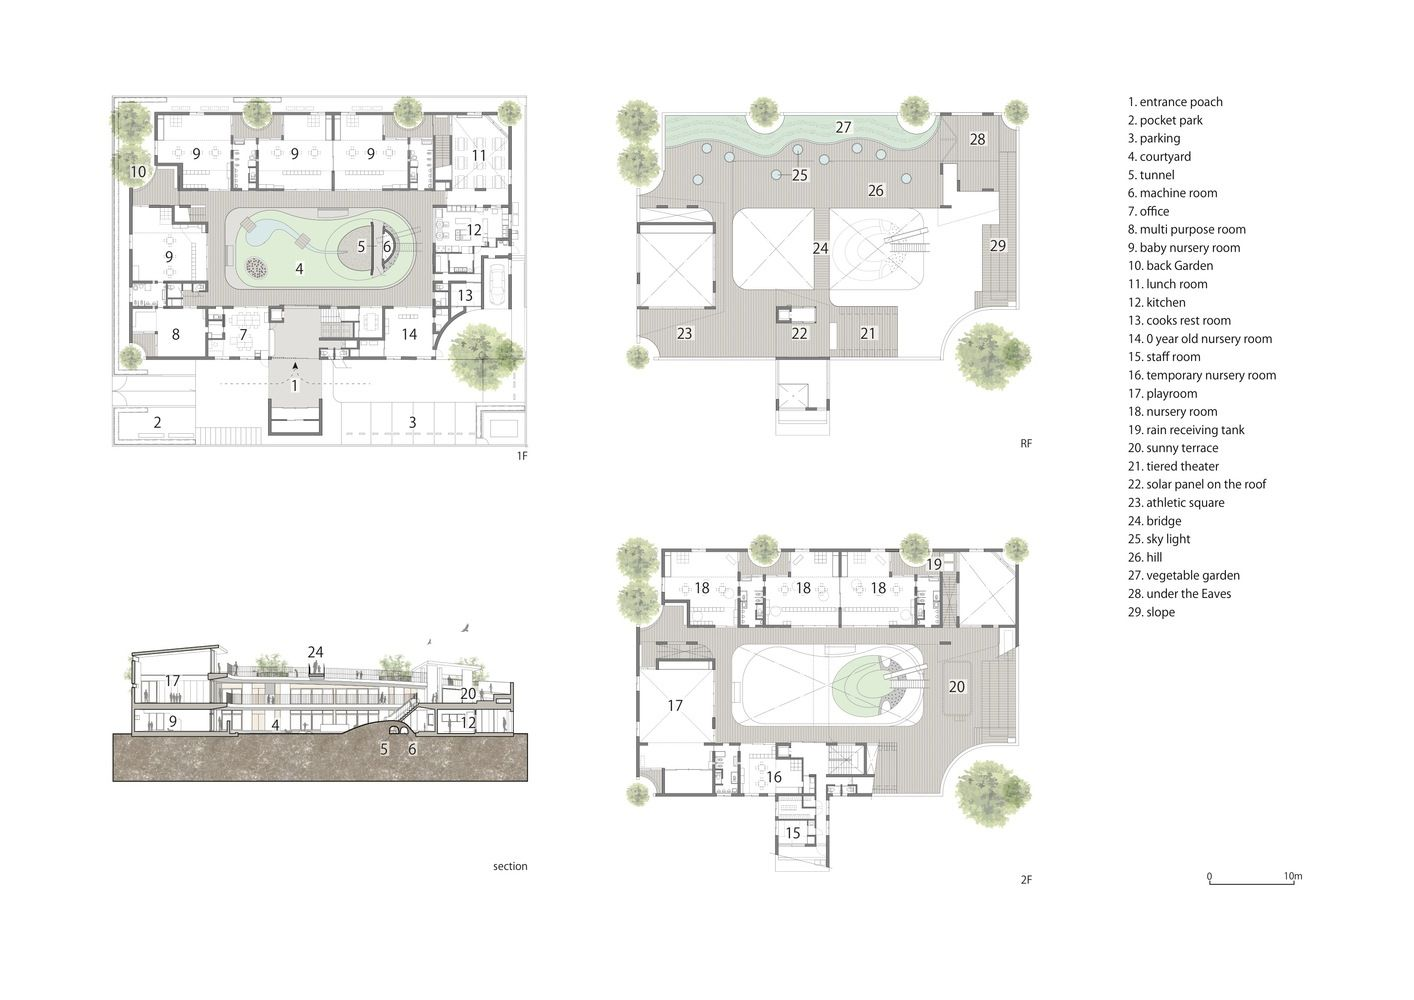 Gallery Of Amanenomori Nursery School Aisaka Architects Atelier 20 Nursery School Nursery School Plan